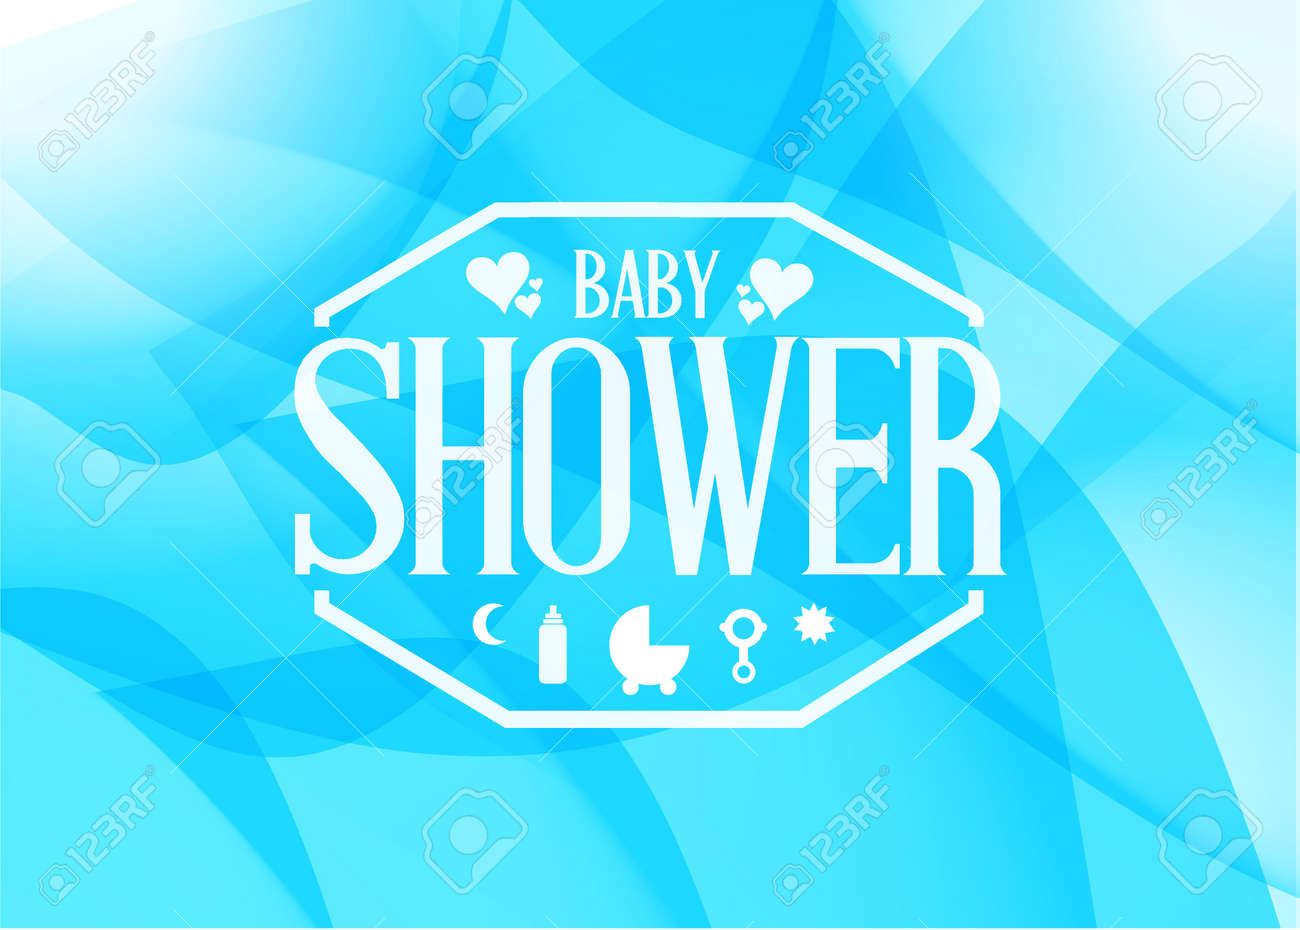 Baby Shower Sign Illustration Design Blue Abstract Graphic